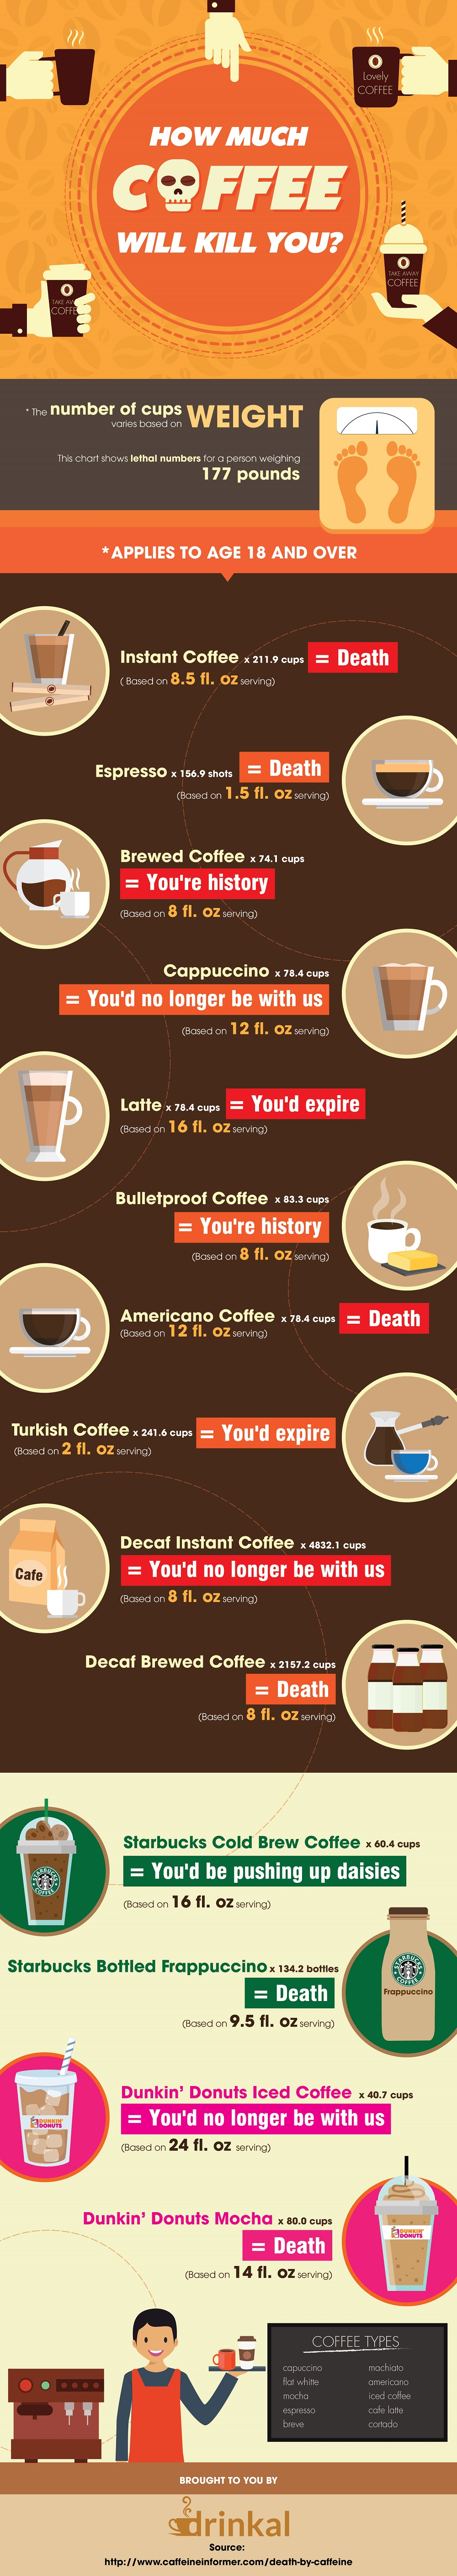 How Much Coffee Will Kill You?